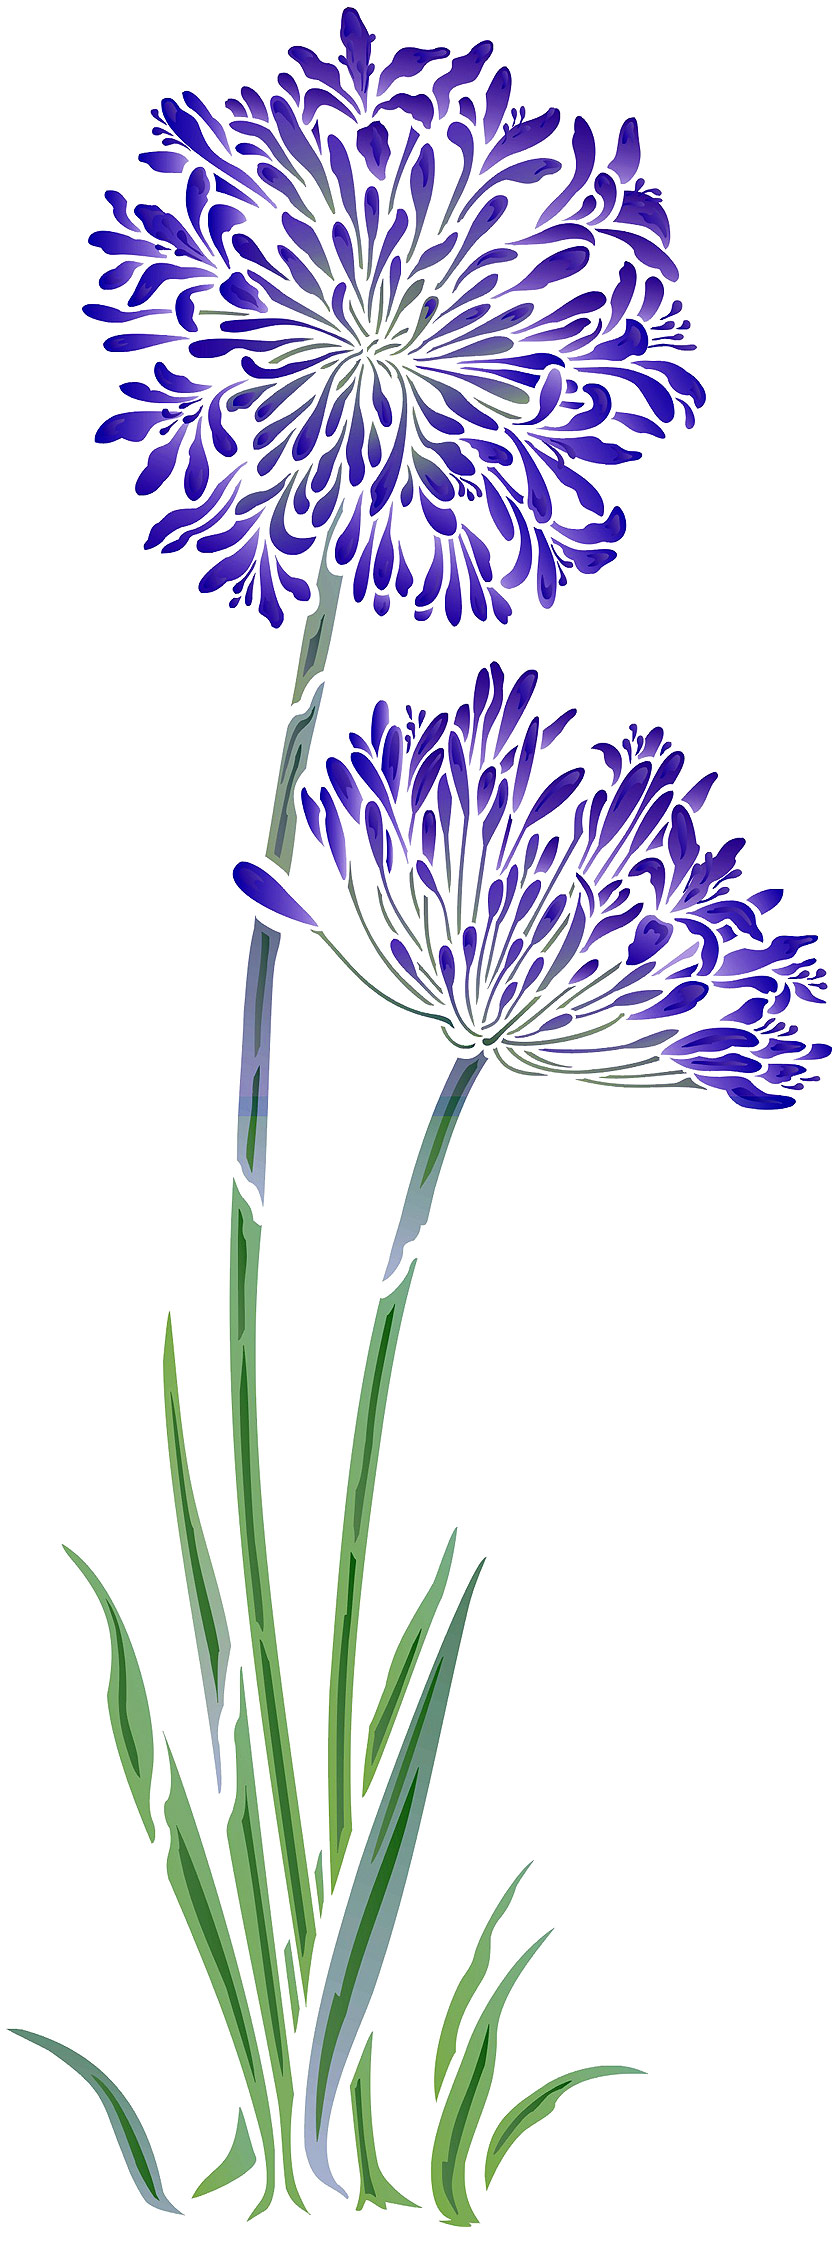 Agapanthus clipart #3, Download drawings